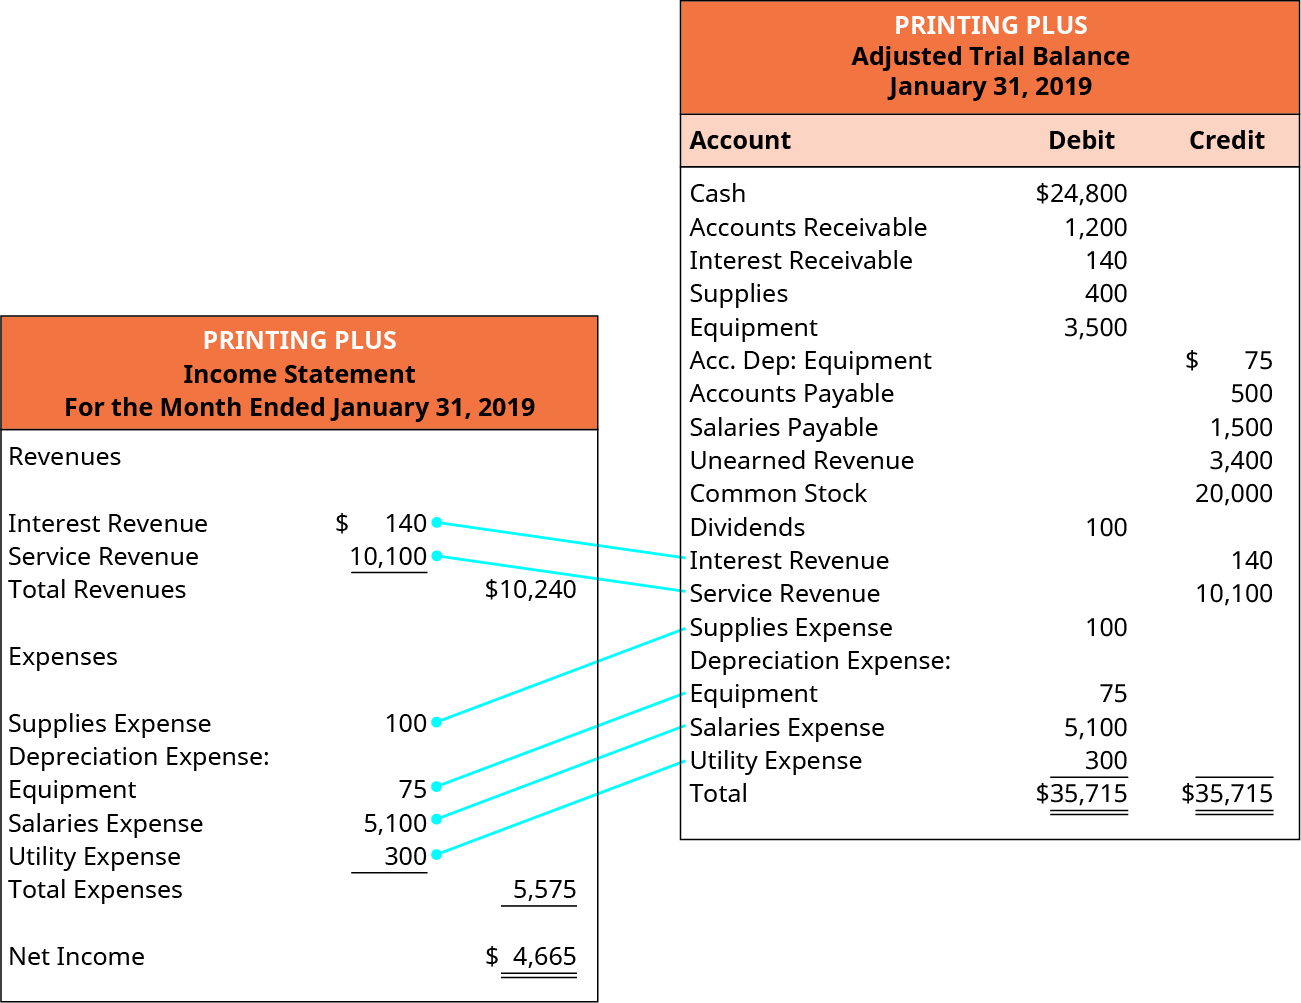 Printing Plus, Income Statement, For the Month Ended January 31, 2019. Revenues: Interest Revenue $140; Service Revenue 10,100; Total Revenues $10,240. Expenses: Supplies Expense 100; Depreciation Expense: Equipment 75; Salaries Expense 5,100; Utility Expense 300; Total Expenses 5,575. Net Income $4,665. The Printing Plus Adjusted Trial Balance at January 31, 2019 is to the right of the Income Statement with lines connecting the Income Statement accounts from the Adjusted Trial Balance to the same accounts on the Income Statement. Printing Plus, Adjusted Trial Balance, January 31, 2019. Debit accounts: Cash $24,800; Accounts Receivable 1,200; Interest Receivable 140; Supplies 400; Equipment; 3,500; Dividends 100; Supplies Expense 100; Equipment 75; Salaries Expense 5,100; Utility Expense 300; Total Debit $35,715. Credit accounts; Equipment $75; Accounts Payable 500; Salaries Payable 1,500; Unearned Revenue 3,400; Common Stock 20,000; Interest Revenue 140; Service Revenue 10,100; Total Credit $35,715.